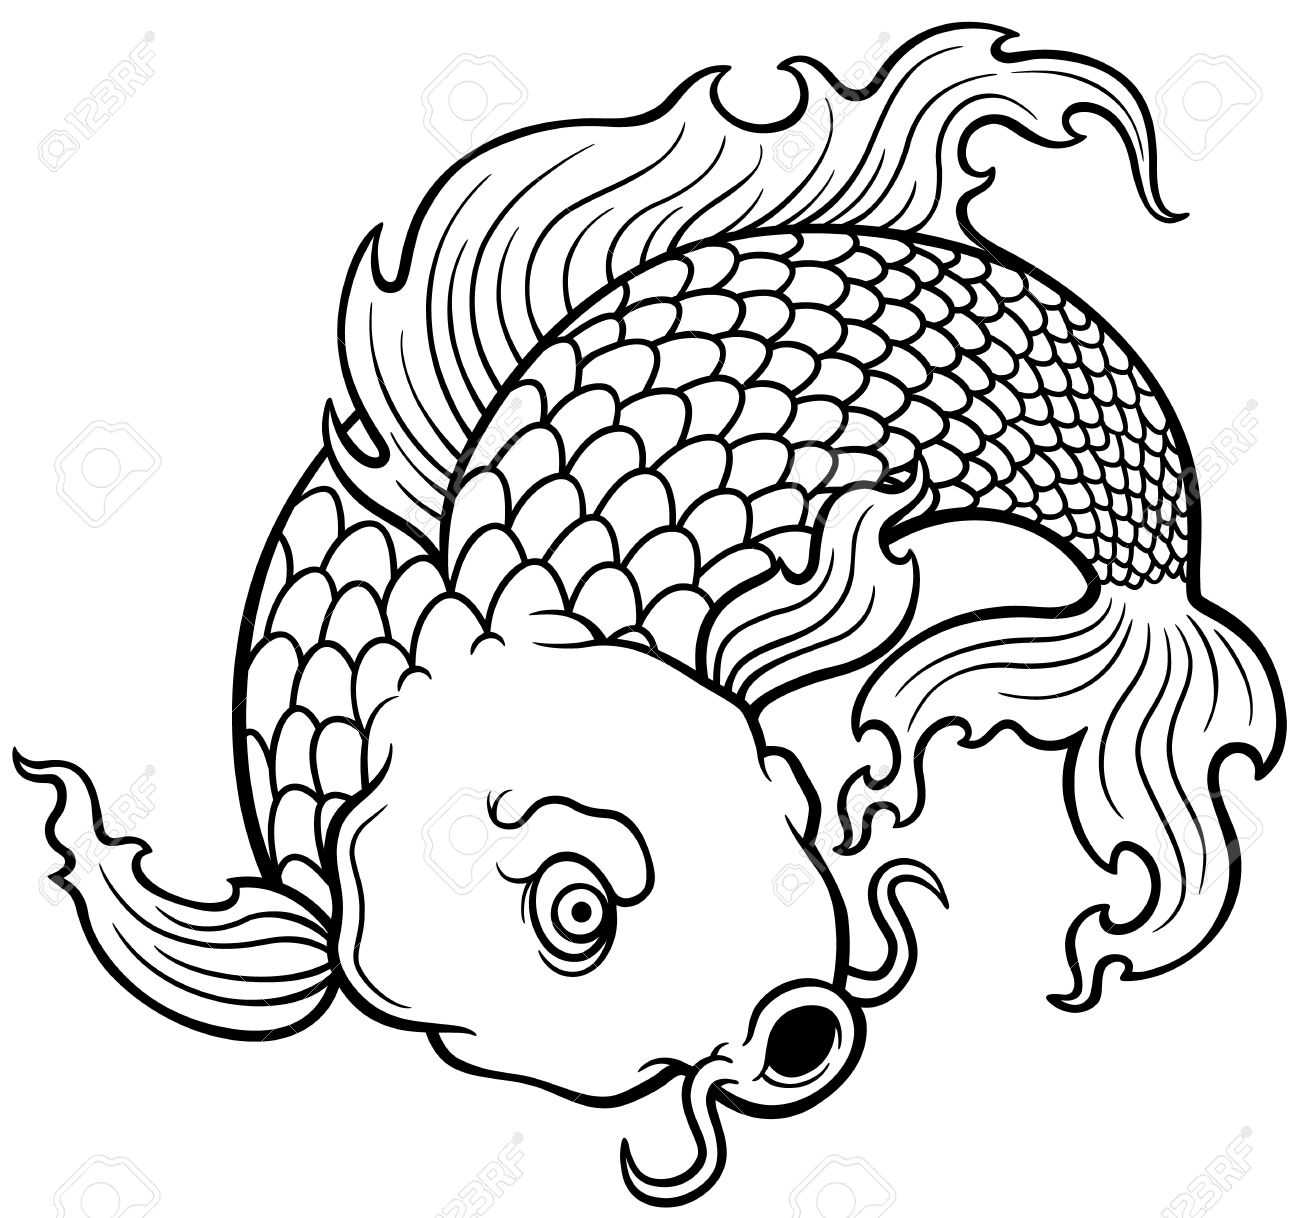 Cute Fish Drawing at GetDrawings.com | Free for personal use Cute ...